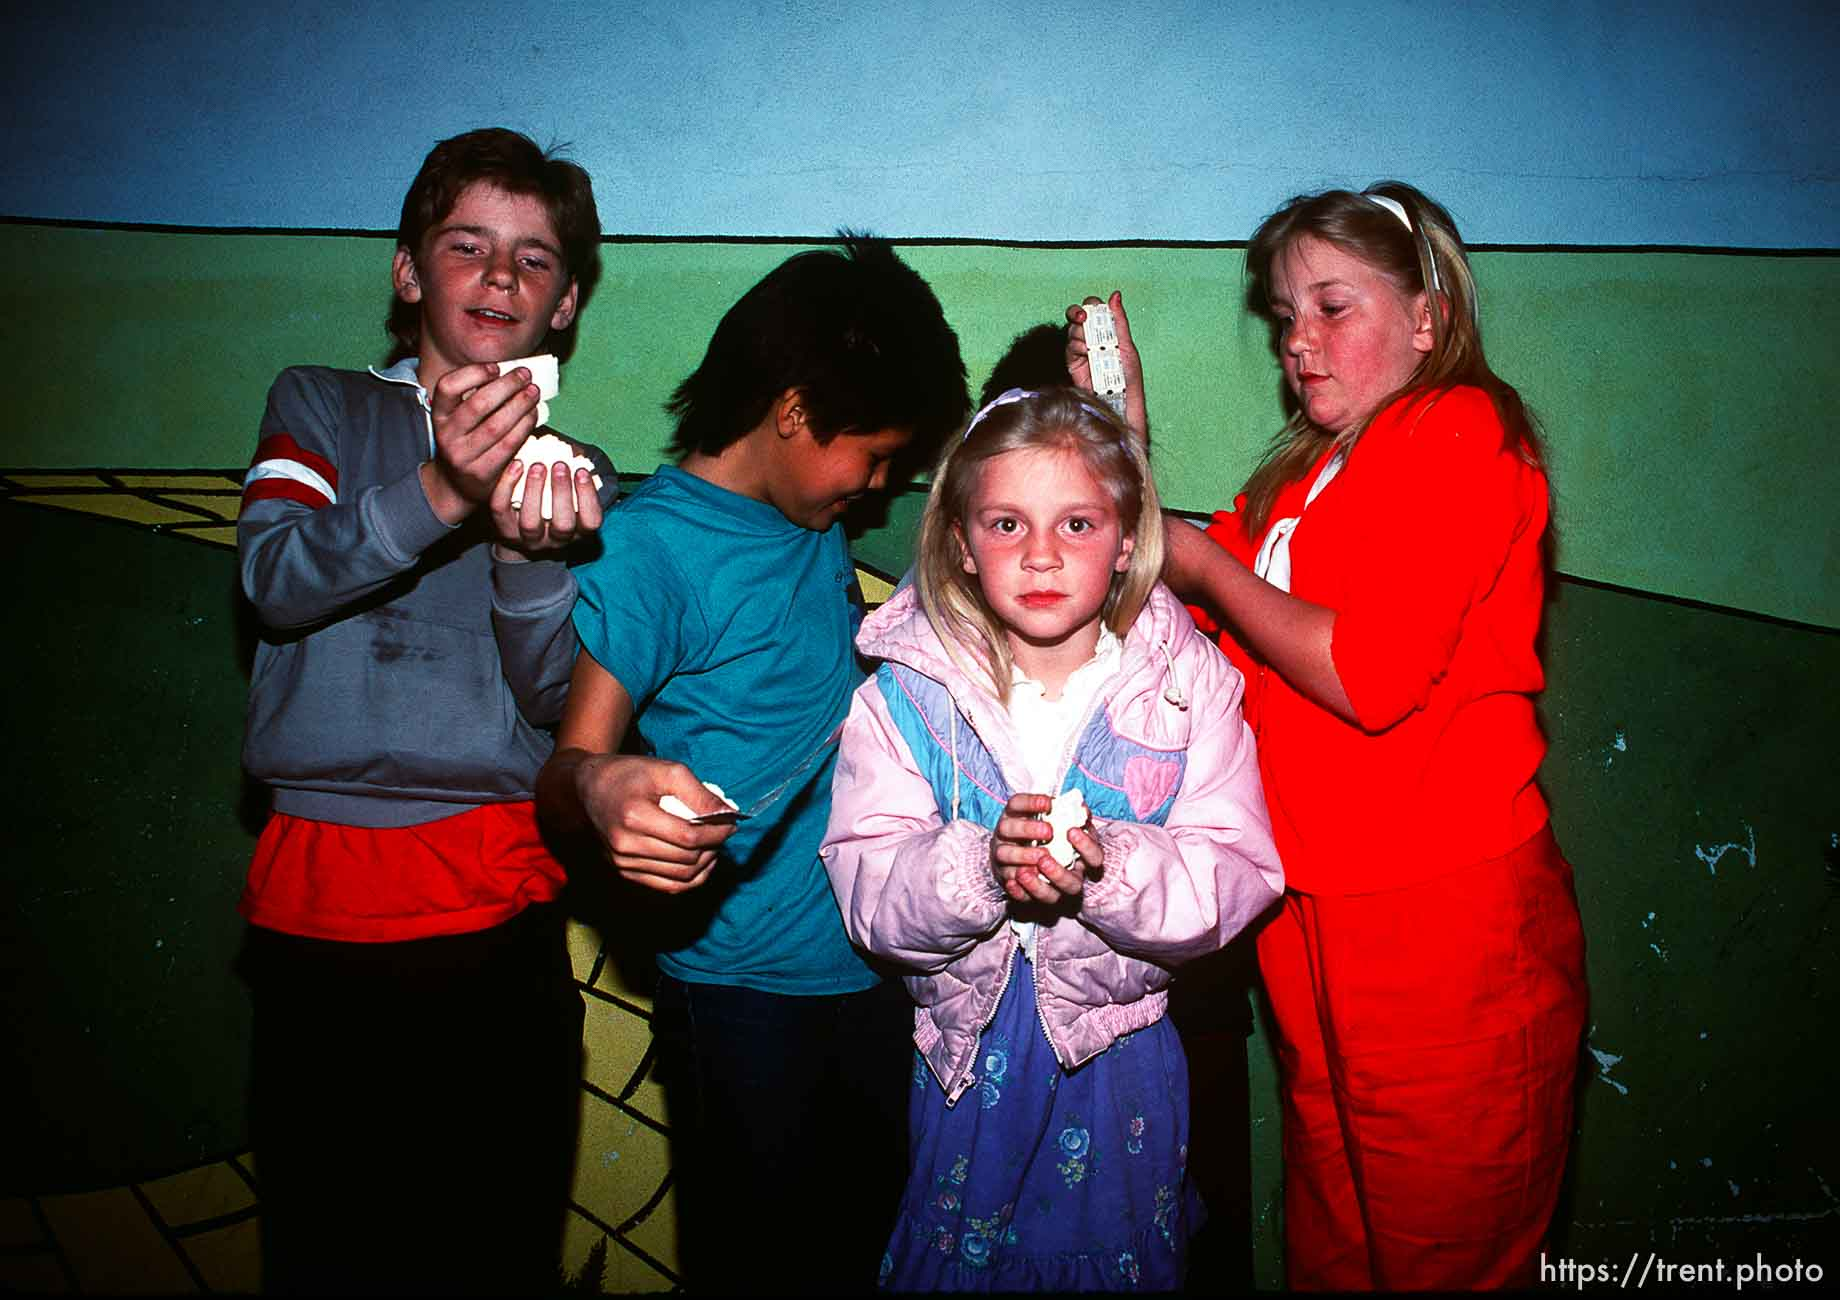 Kids with tickets from Trolley Games, march 1988.